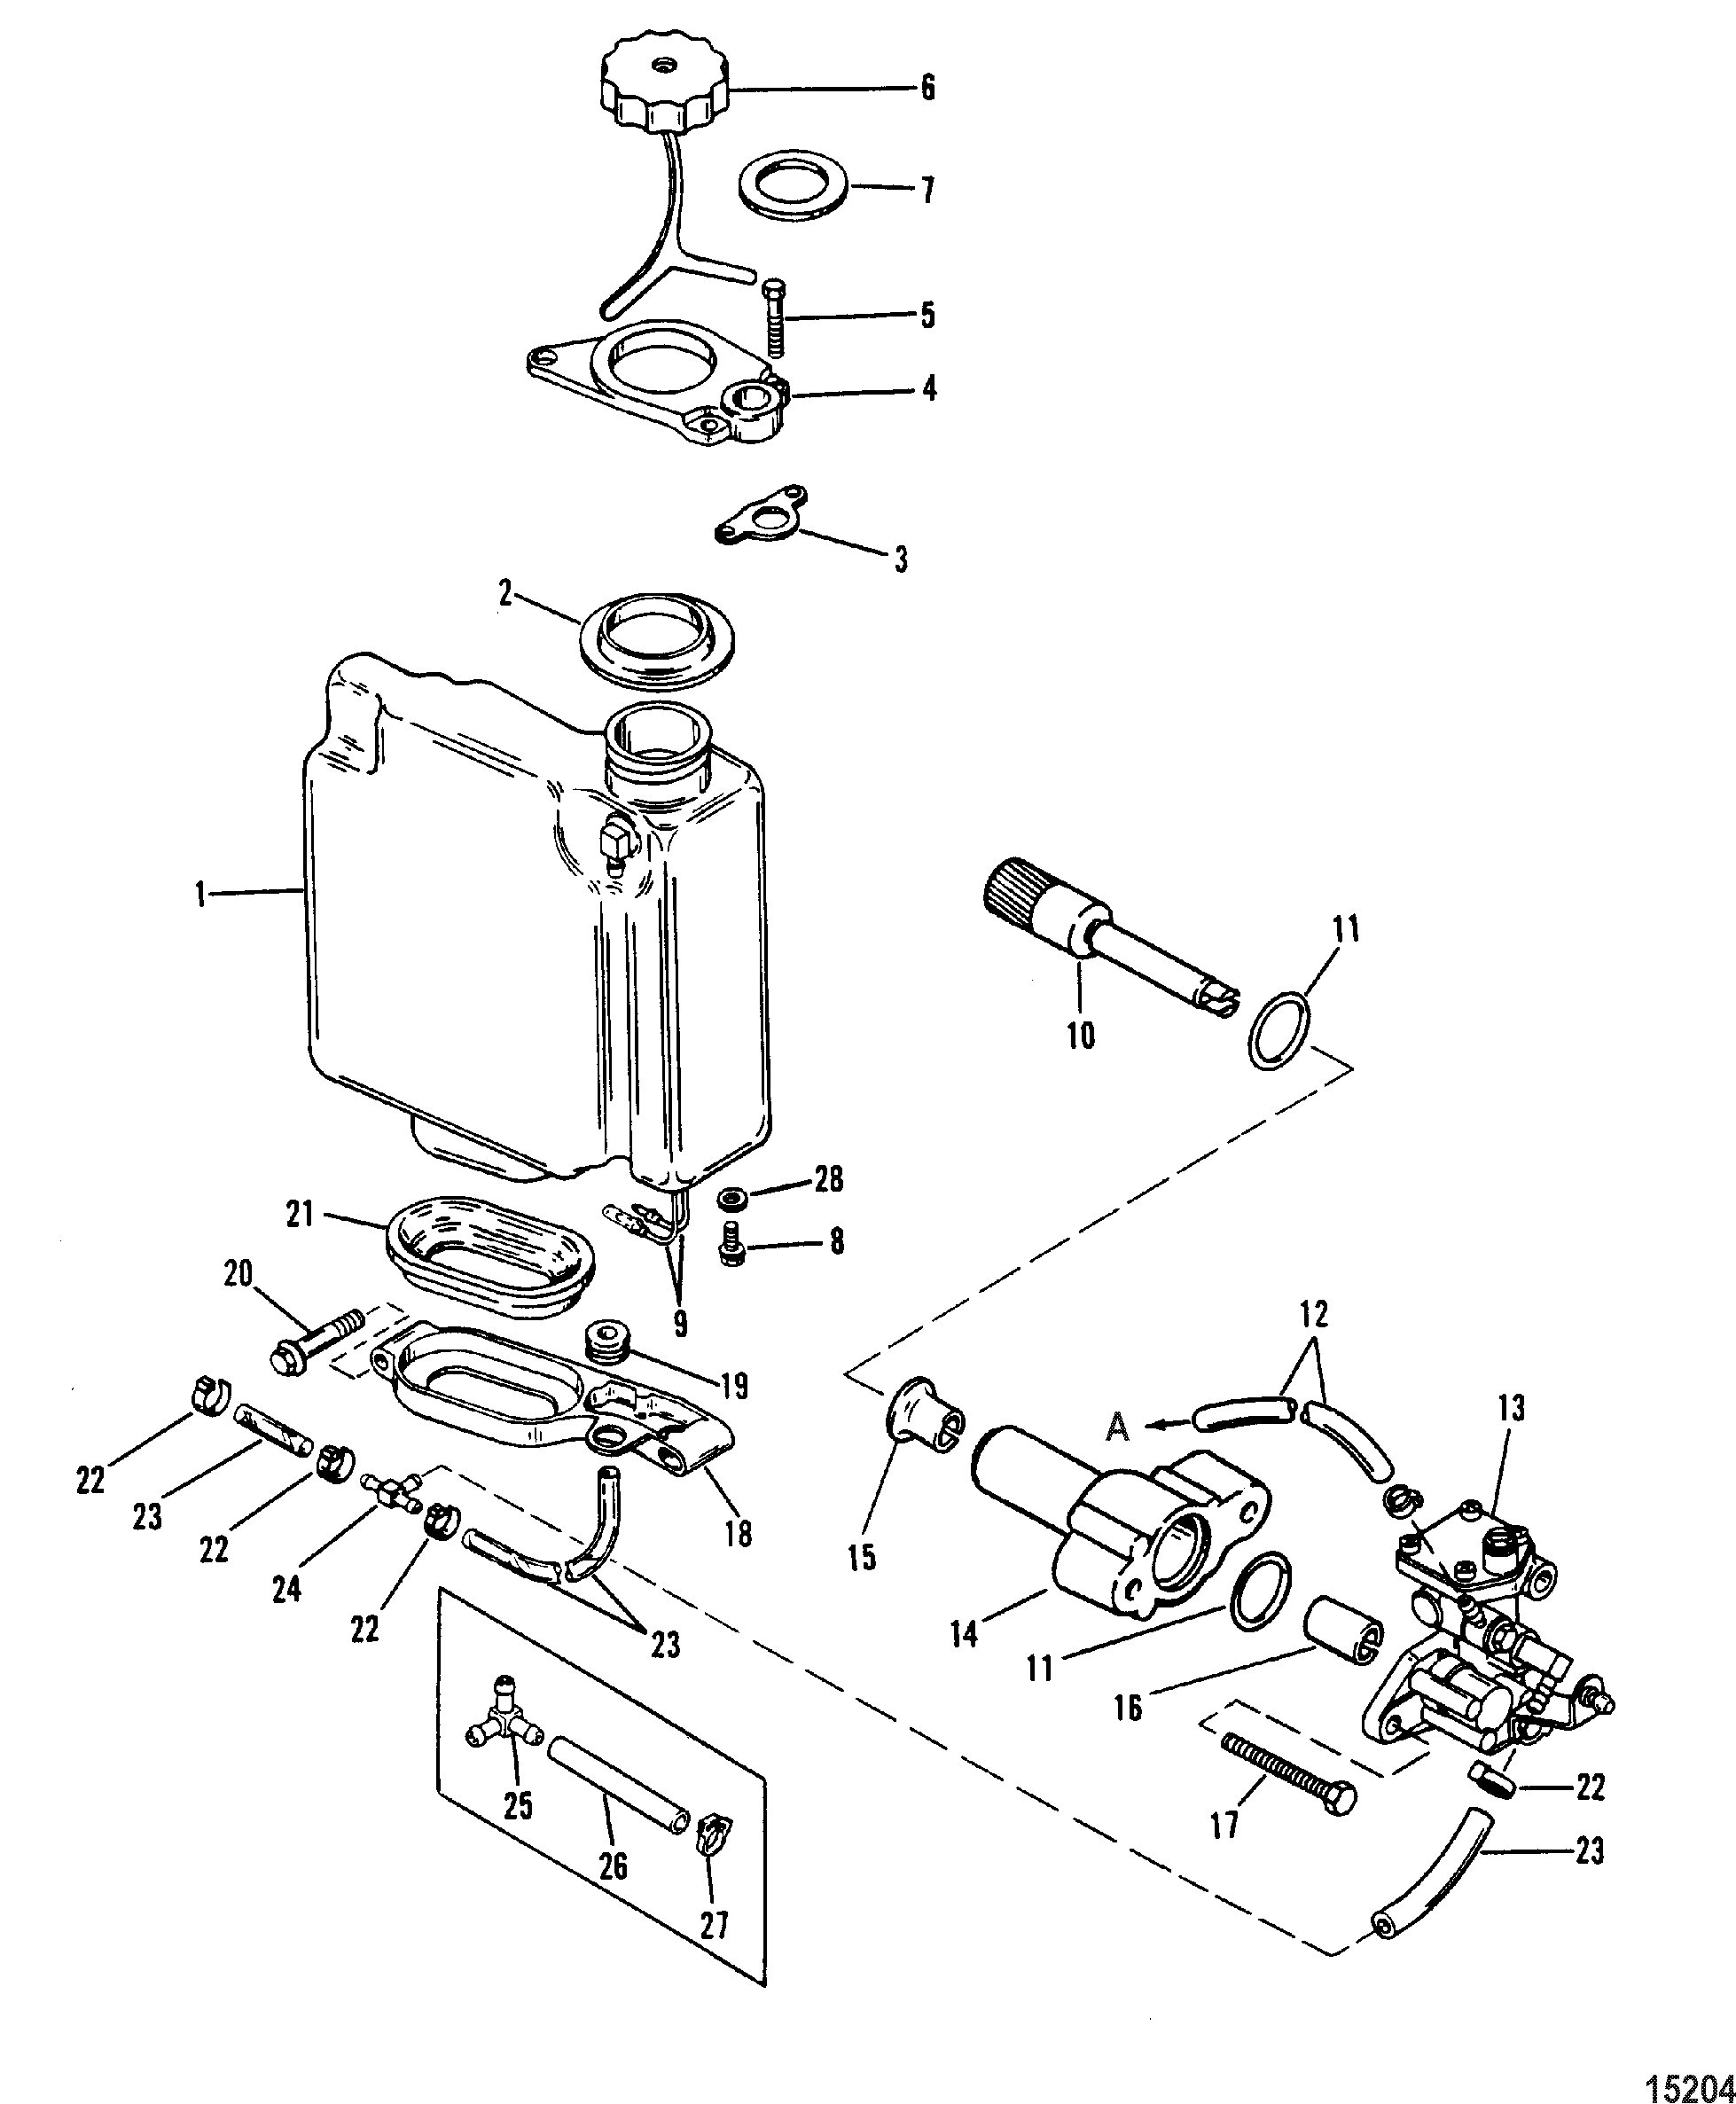 15204?resize\\\\\=665%2C806\\\\\&ssl\\\\\=1 yamaha outboard wiring diagram dexter wiring diagram, yamaha golf mercury tachometer wiring harness at cos-gaming.co